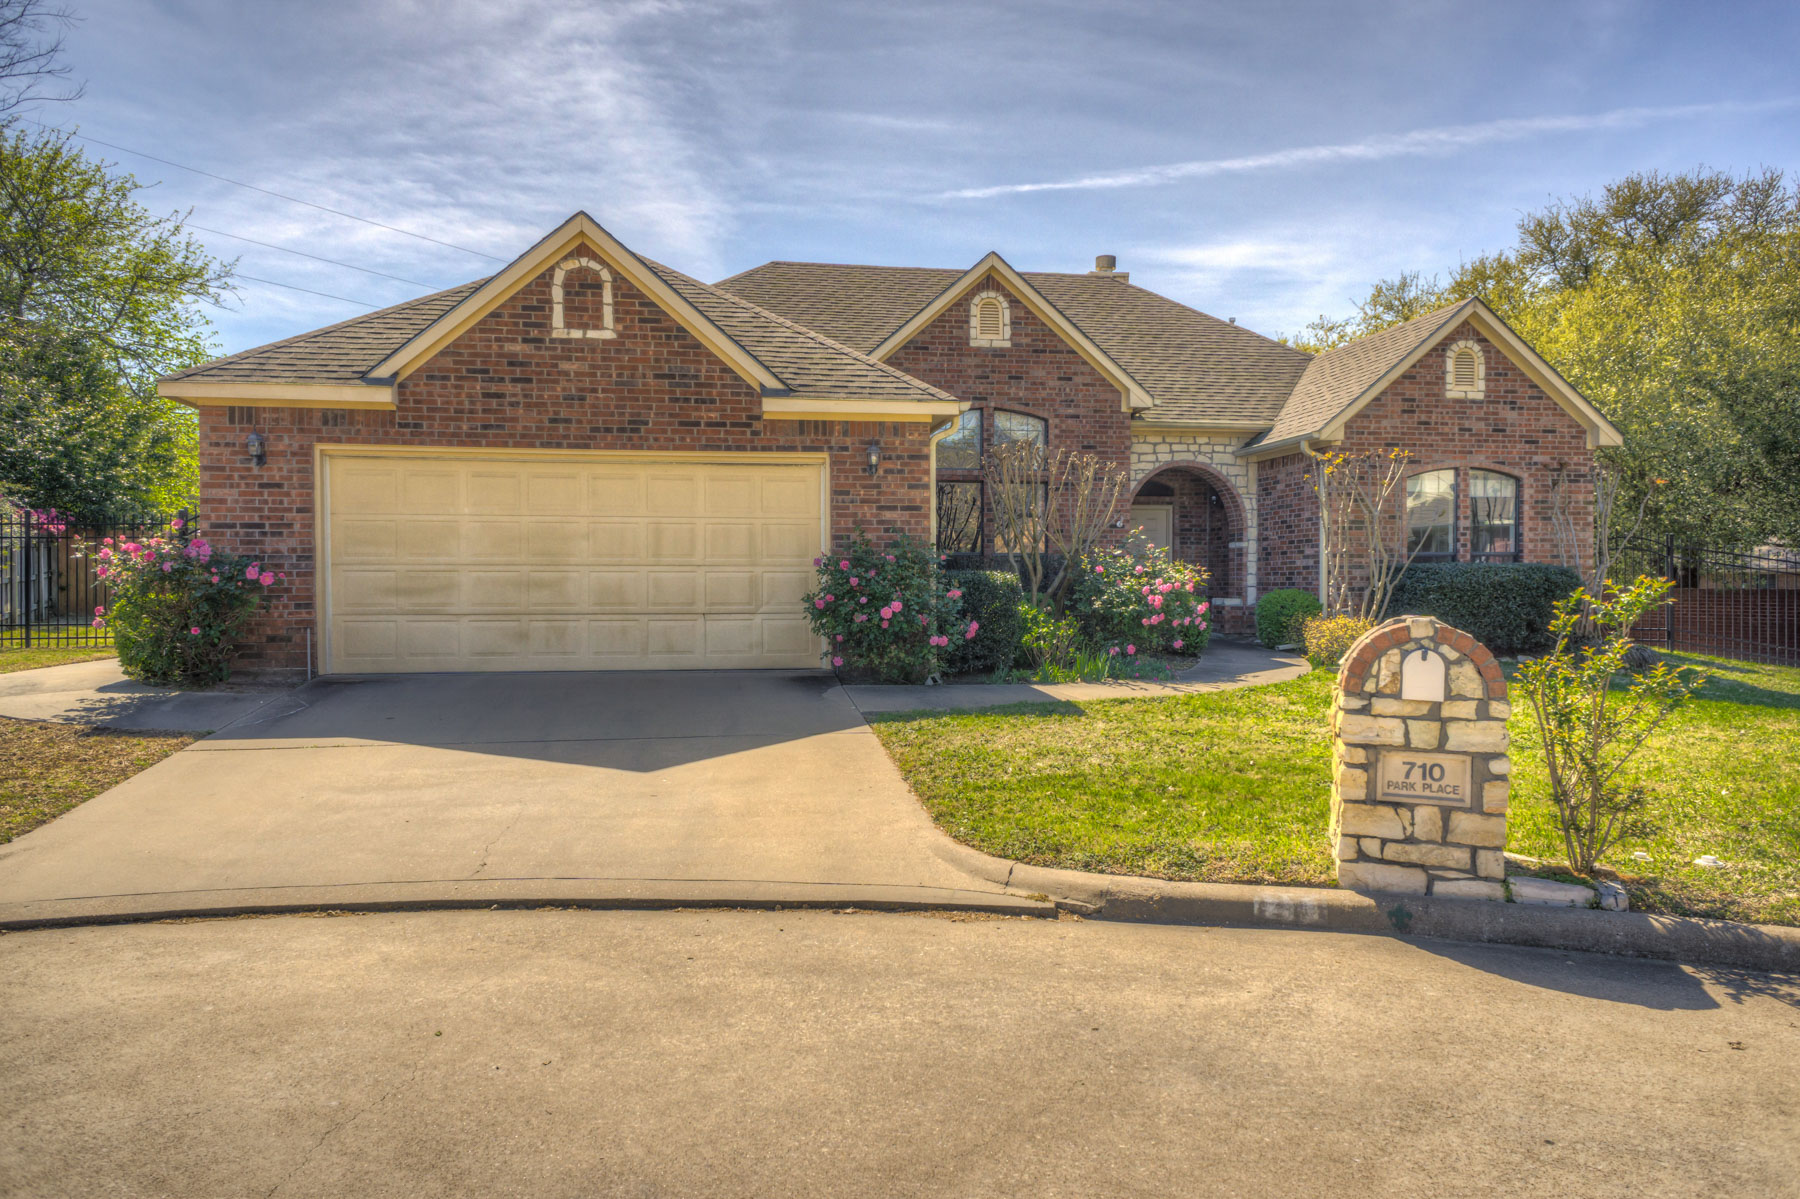 Single Family Home for Sale at Updated Near Athens Country Club 710 Park Pl Dr Athens, Texas 75751 United States